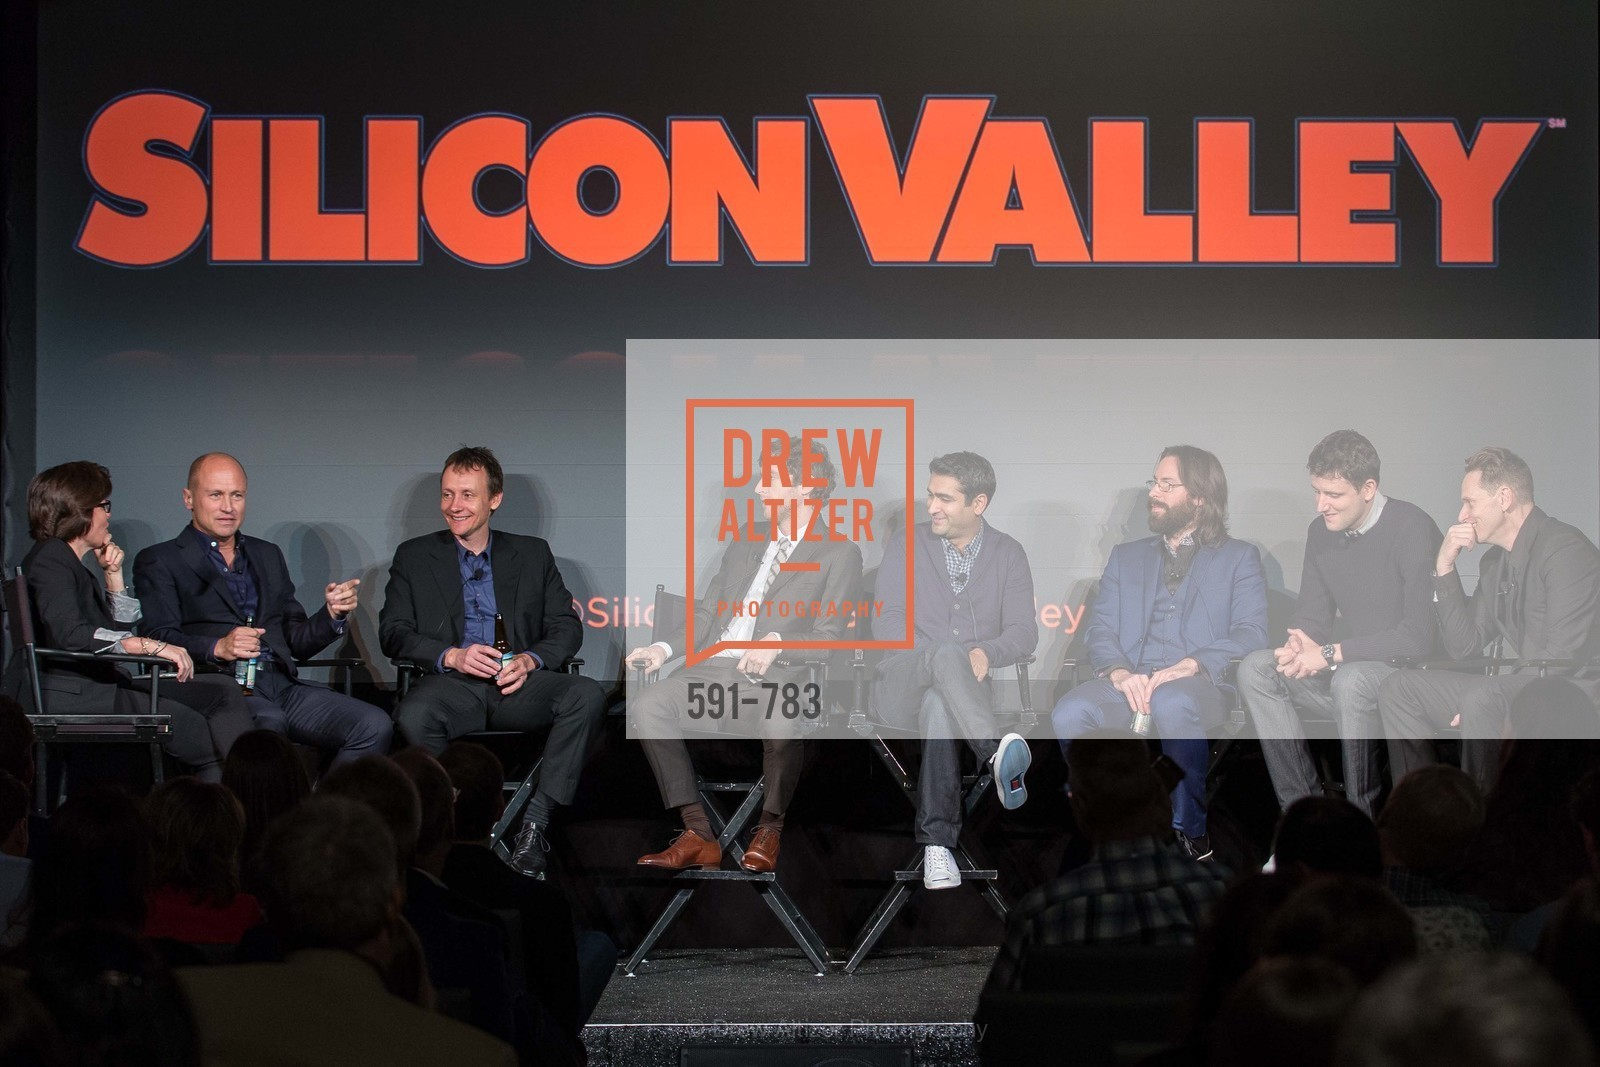 Kara Swisher, Mike Judge, Alec Berg, Thomas Middleditch, Kumail Nanjiani, Martin Starr, Zach Woods, Matt Ross, HBO'S SILICON VALLEY San Francisco Screening, US, April 9th, 2015,Drew Altizer, Drew Altizer Photography, full-service agency, private events, San Francisco photographer, photographer california